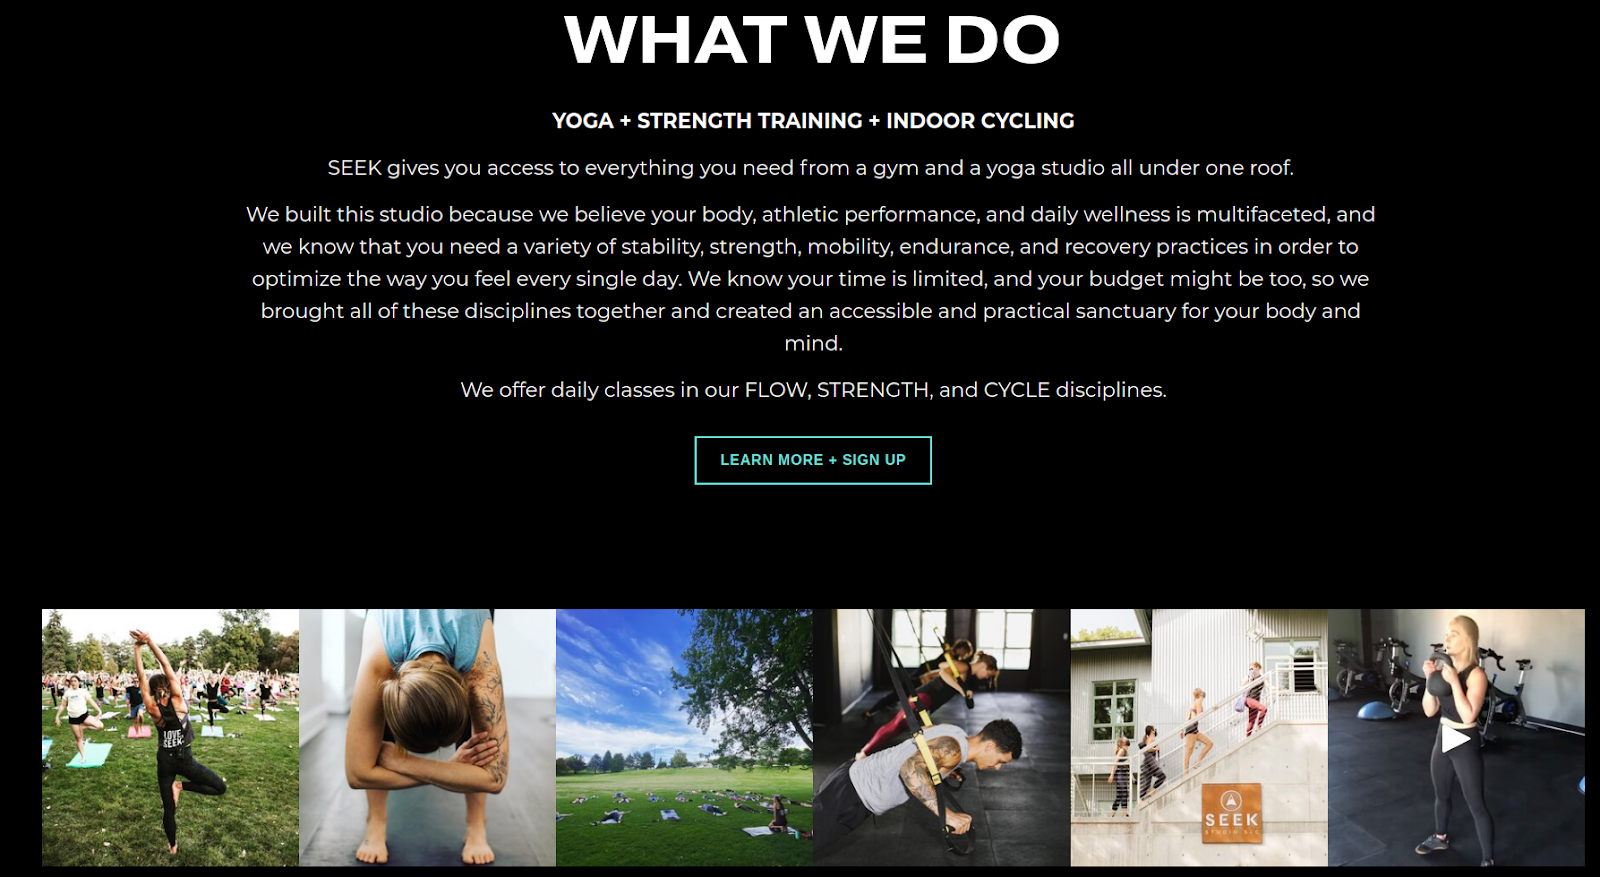 Seek Studio's description involving its core strength as yoga, strength training and indoor cycling